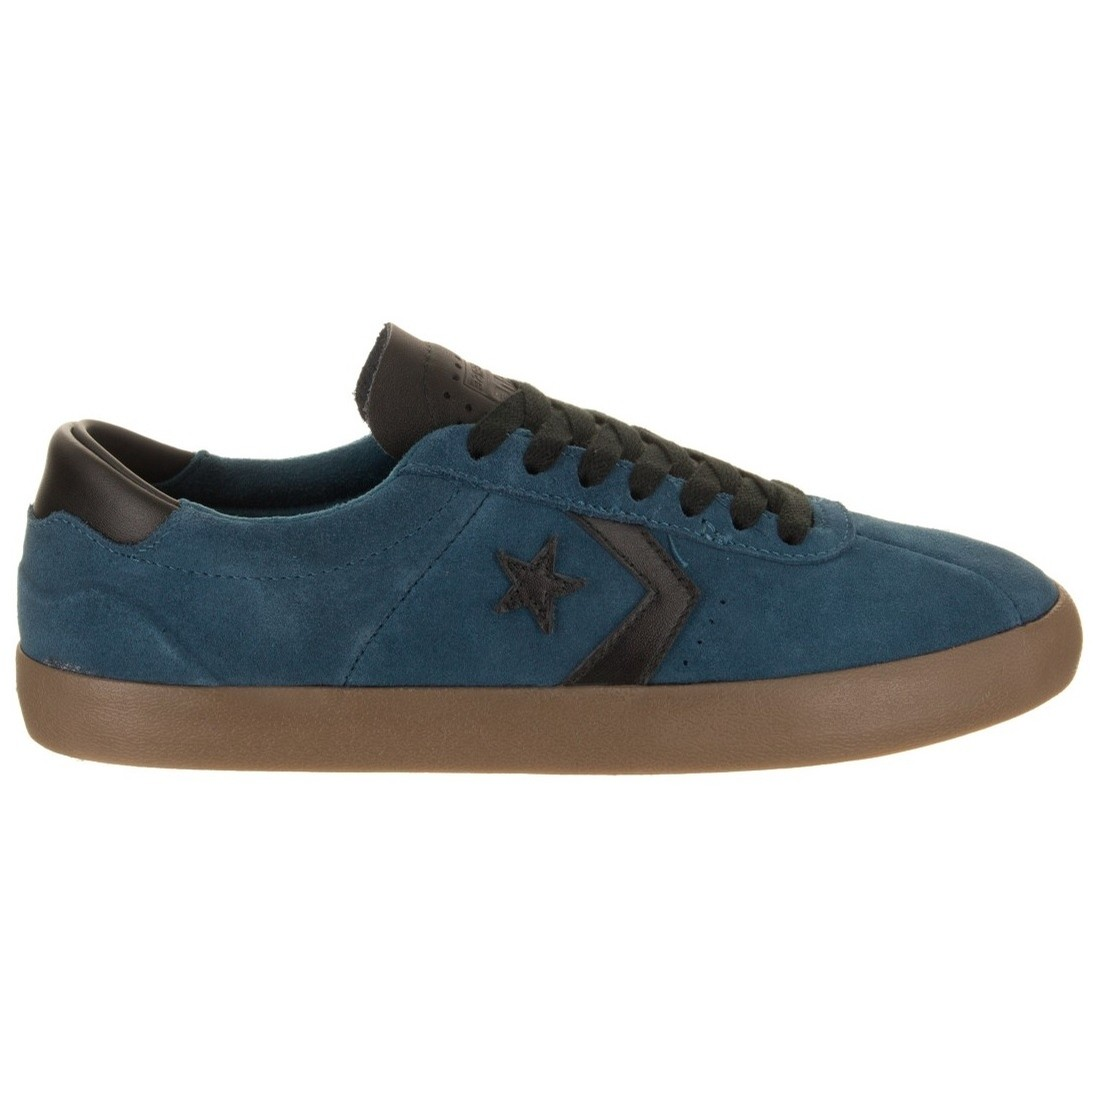 Breakpoint Pro Ox (Blue Fir/Black/Gum)